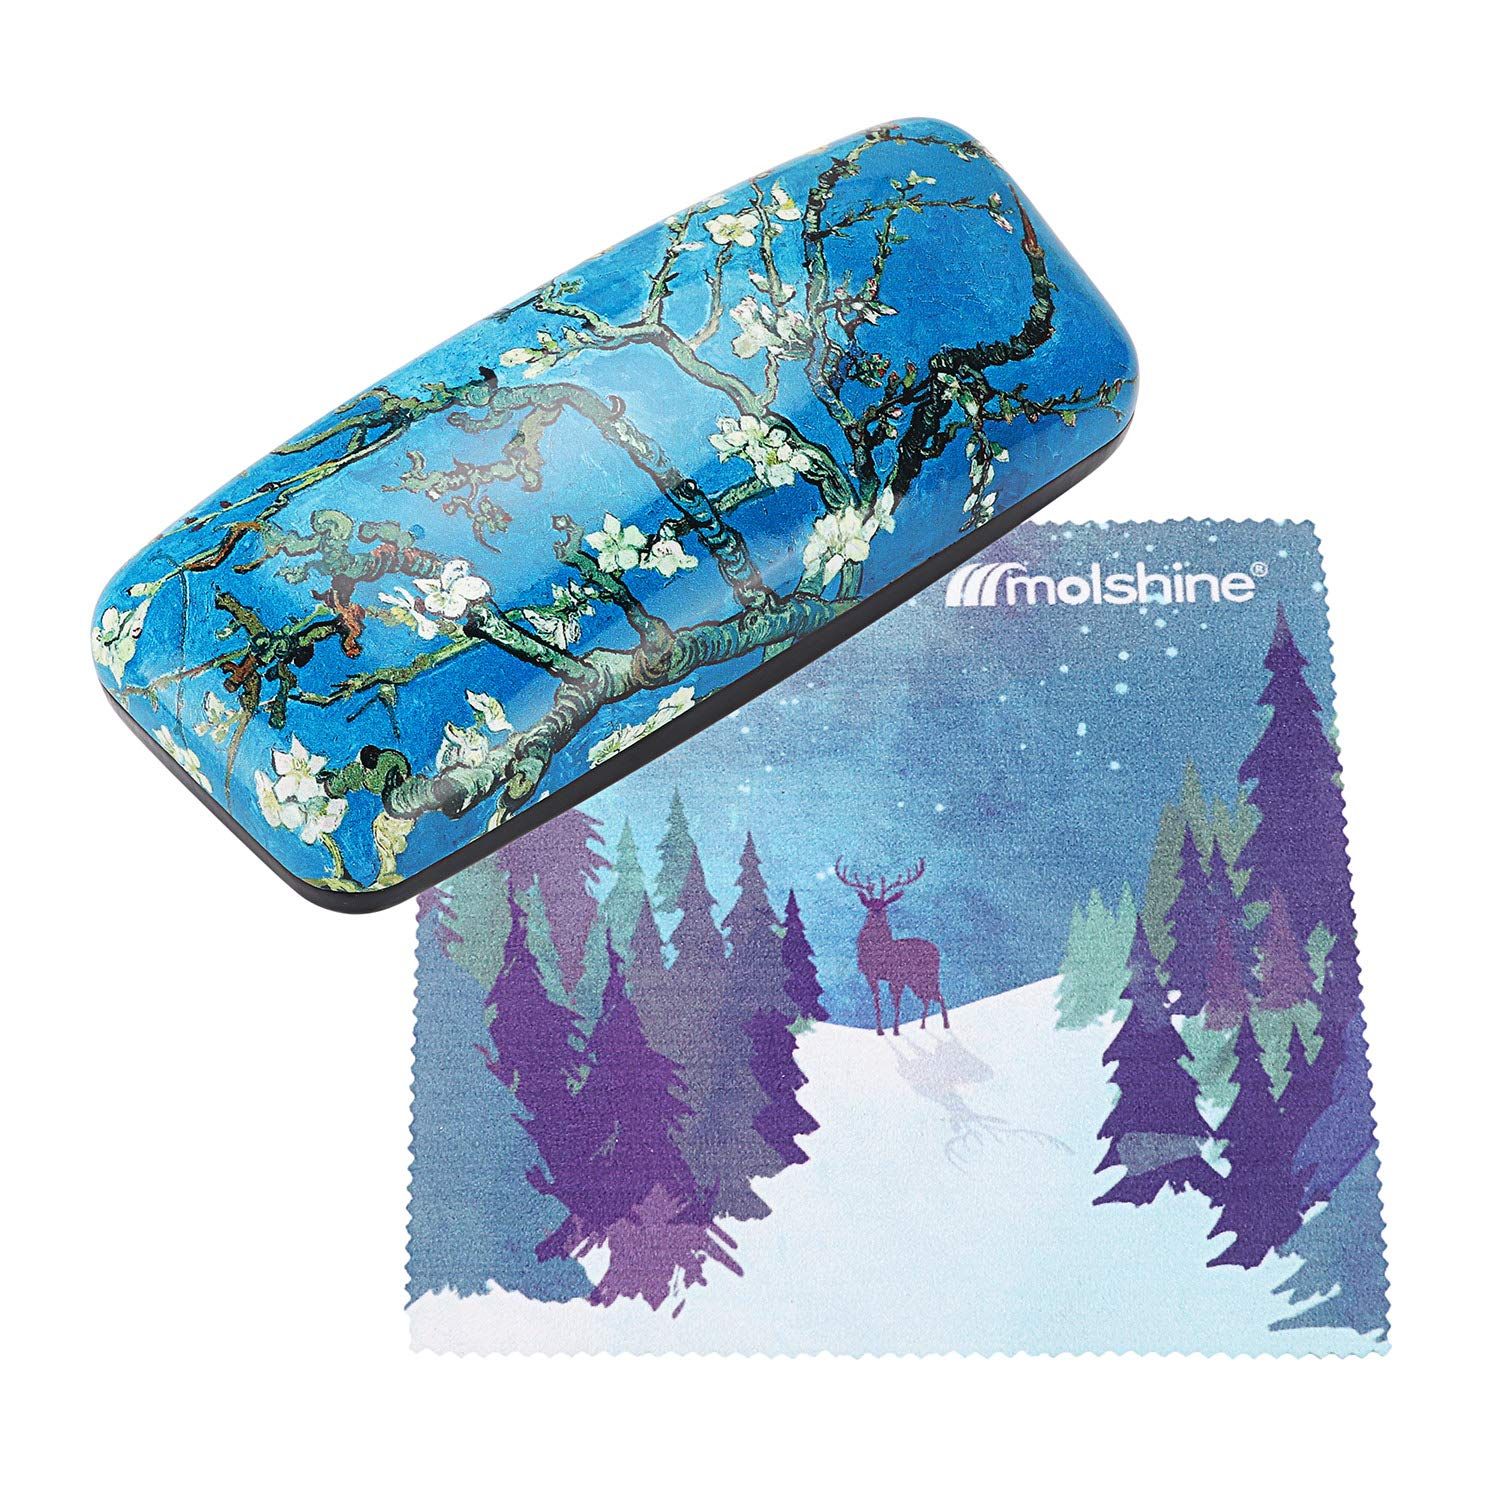 Molshine Oil Painting Pattern Portable Hard shell eyeglasses Glasses Case for Reading Glasses (C)